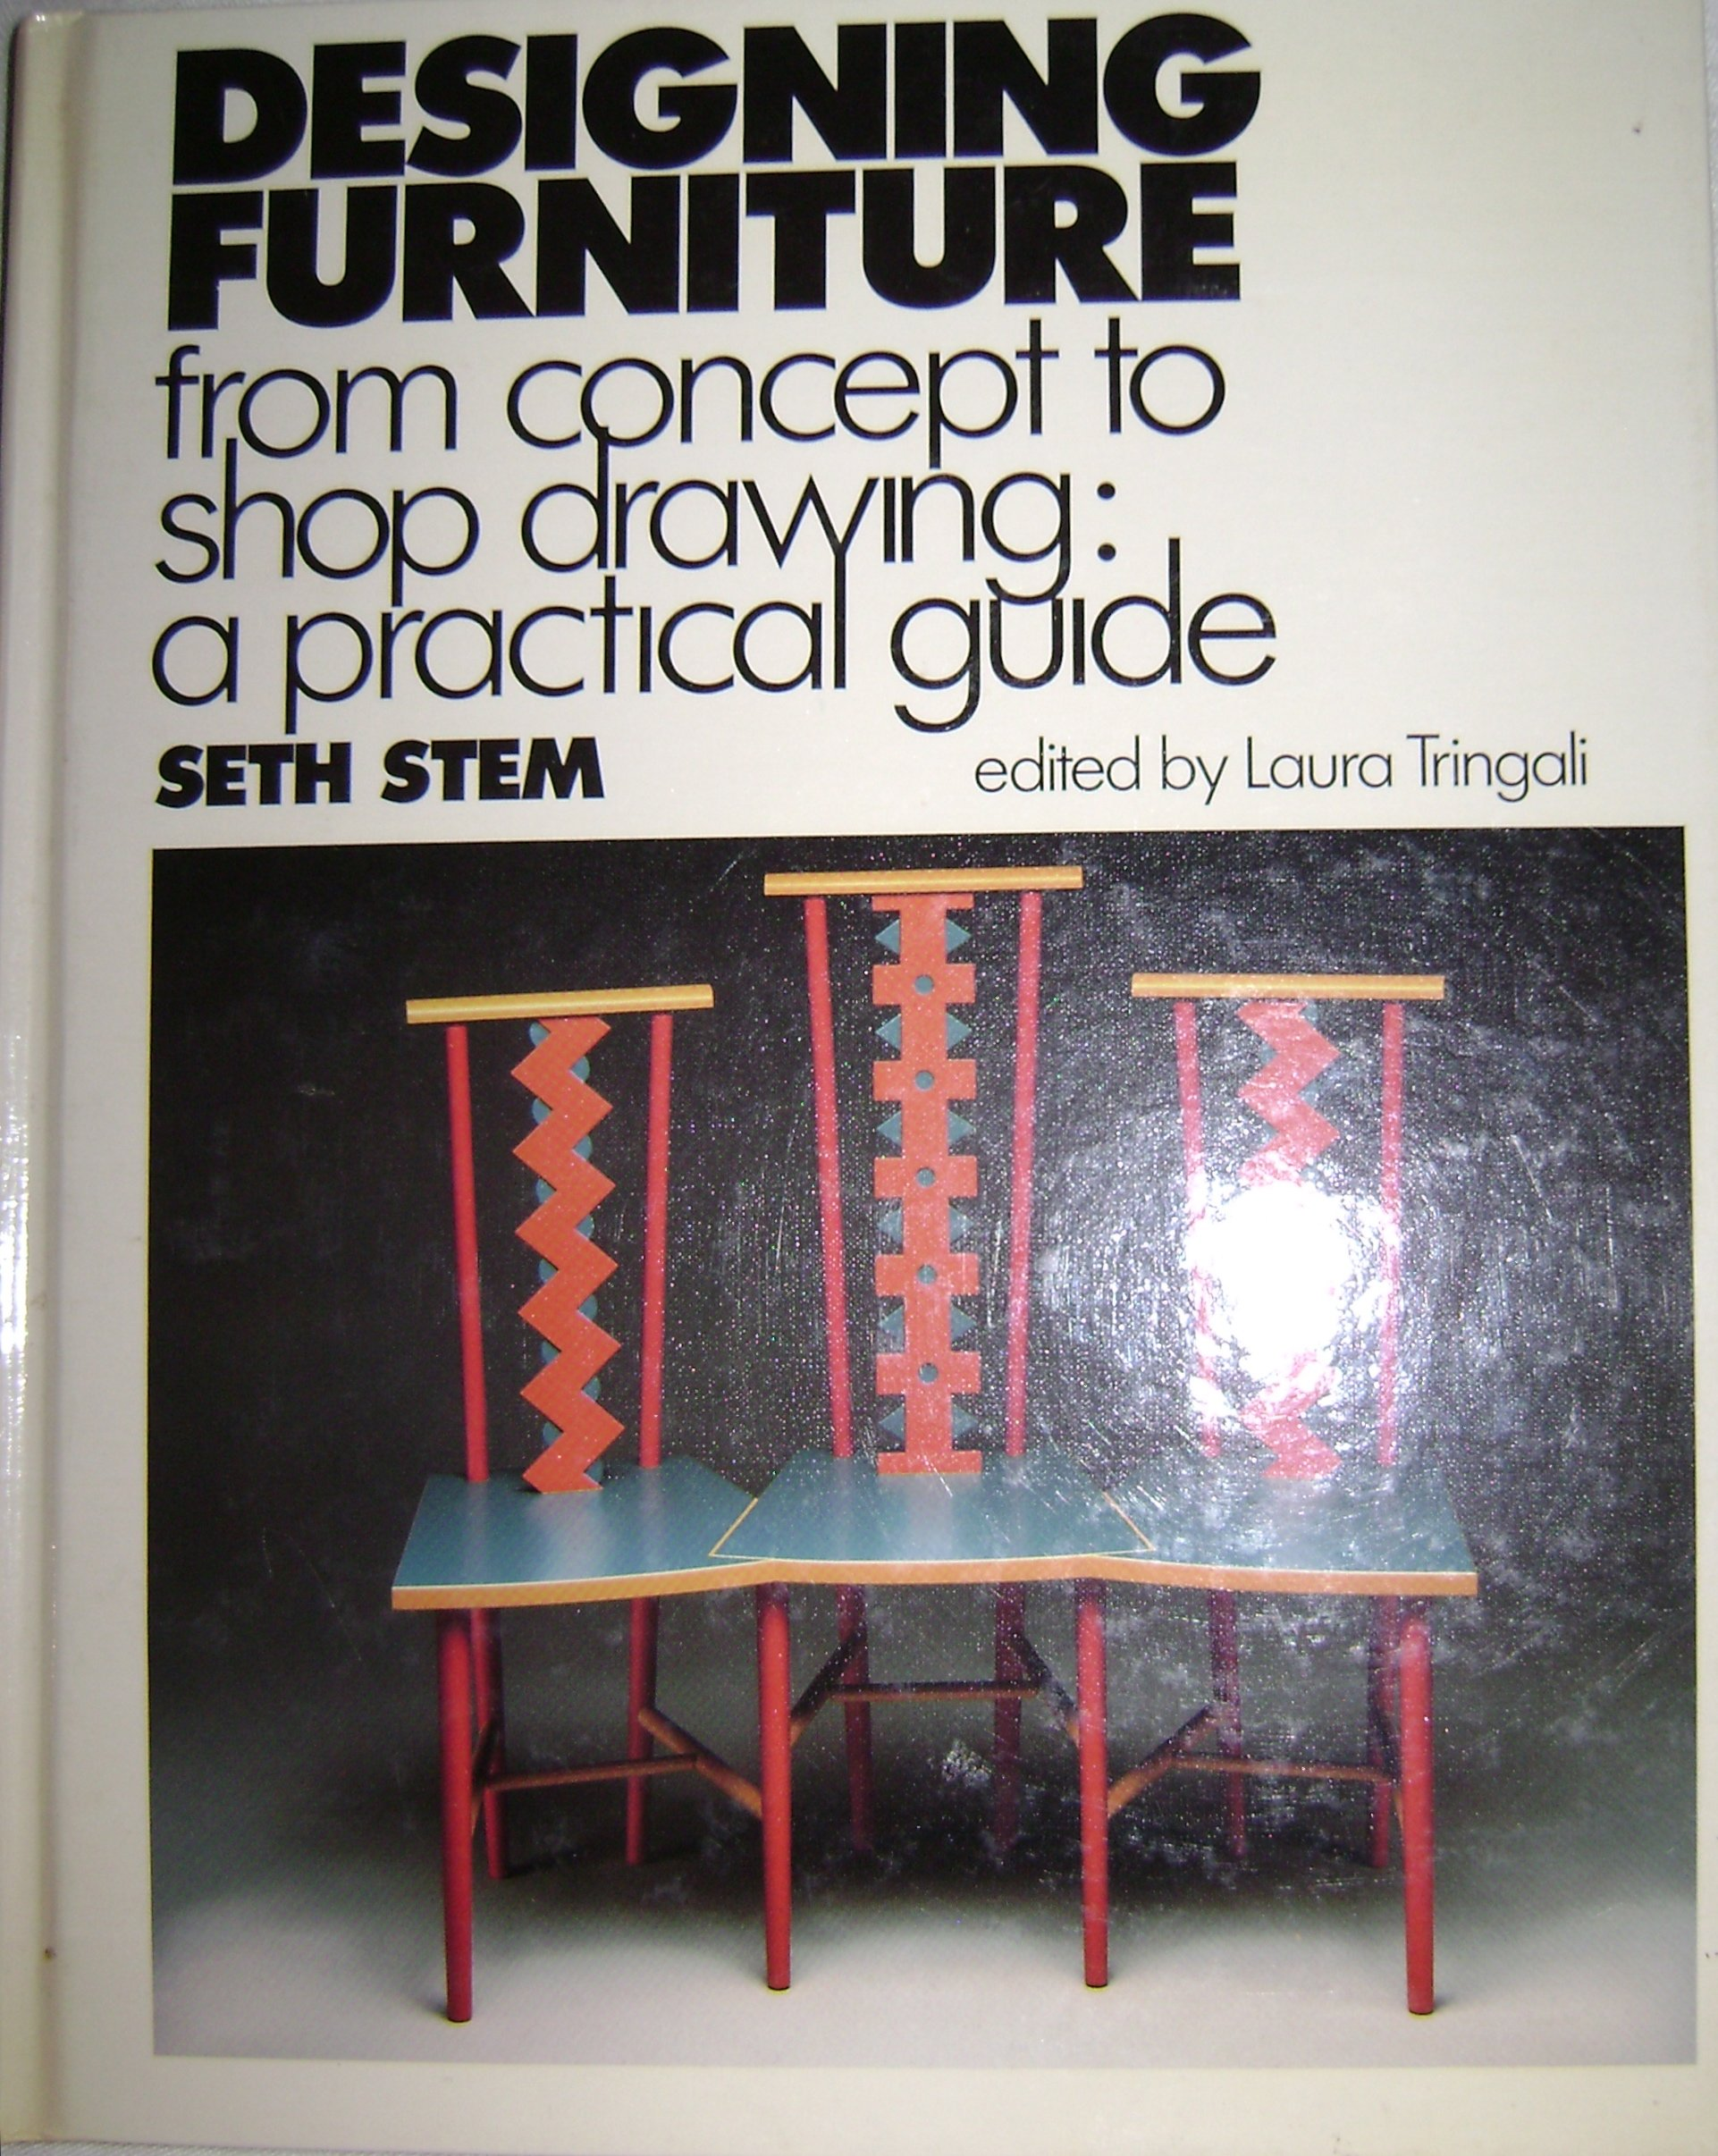 Designing Furniture from Concept to Shop Drawing: A Practical Guide